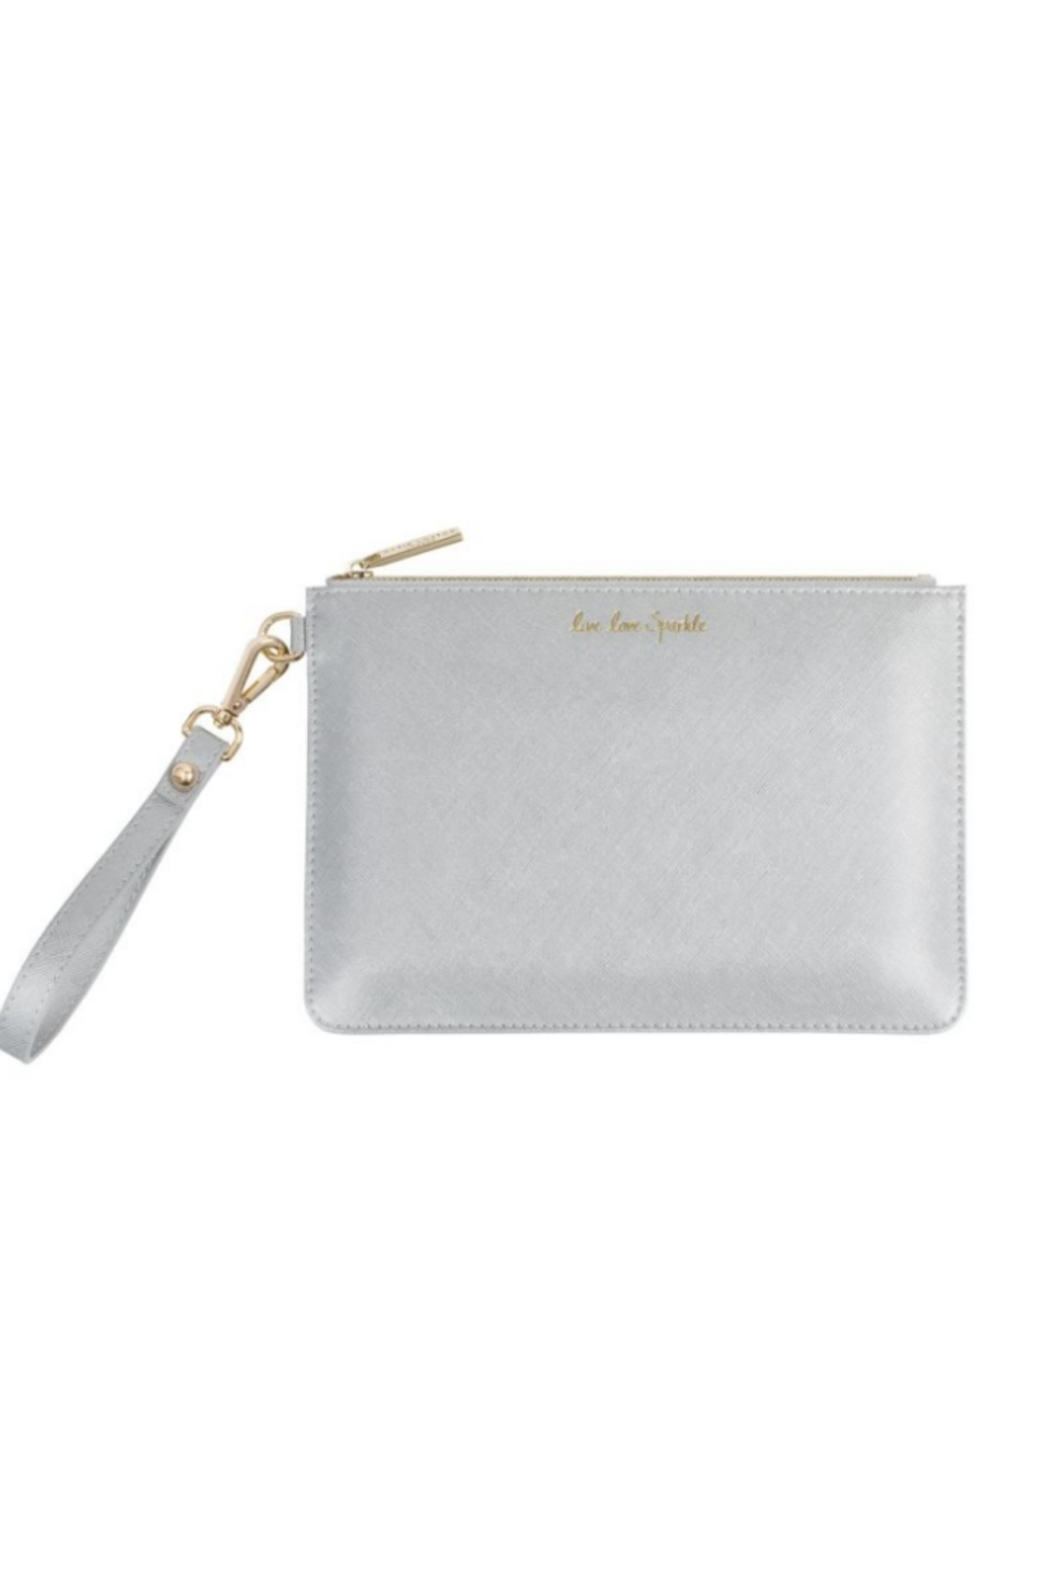 Katie Loxton SECRET MESSAGE POUCH | LIVE LOVE SPARKLE, A REMINDER TO LIVE LOVE SPARKLE EVERY DAY - Front Cropped Image